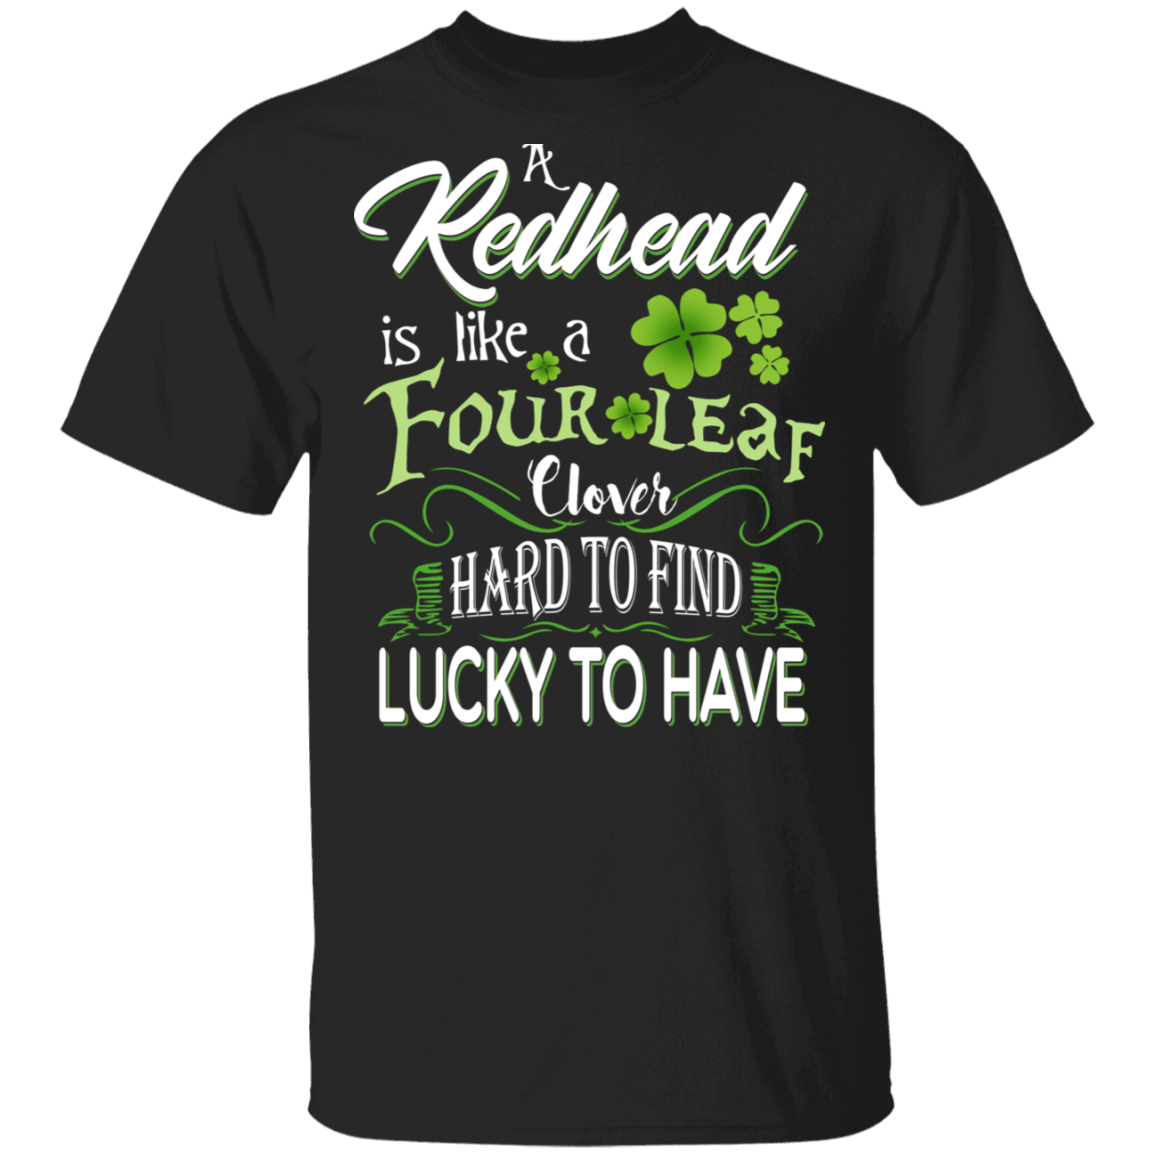 A Redhead Is Like A Four Leaf Clover Hard To Find Lucky To Have T-Shirts, Hoodies 1049-9953-83108879-48144 - Tee Ript